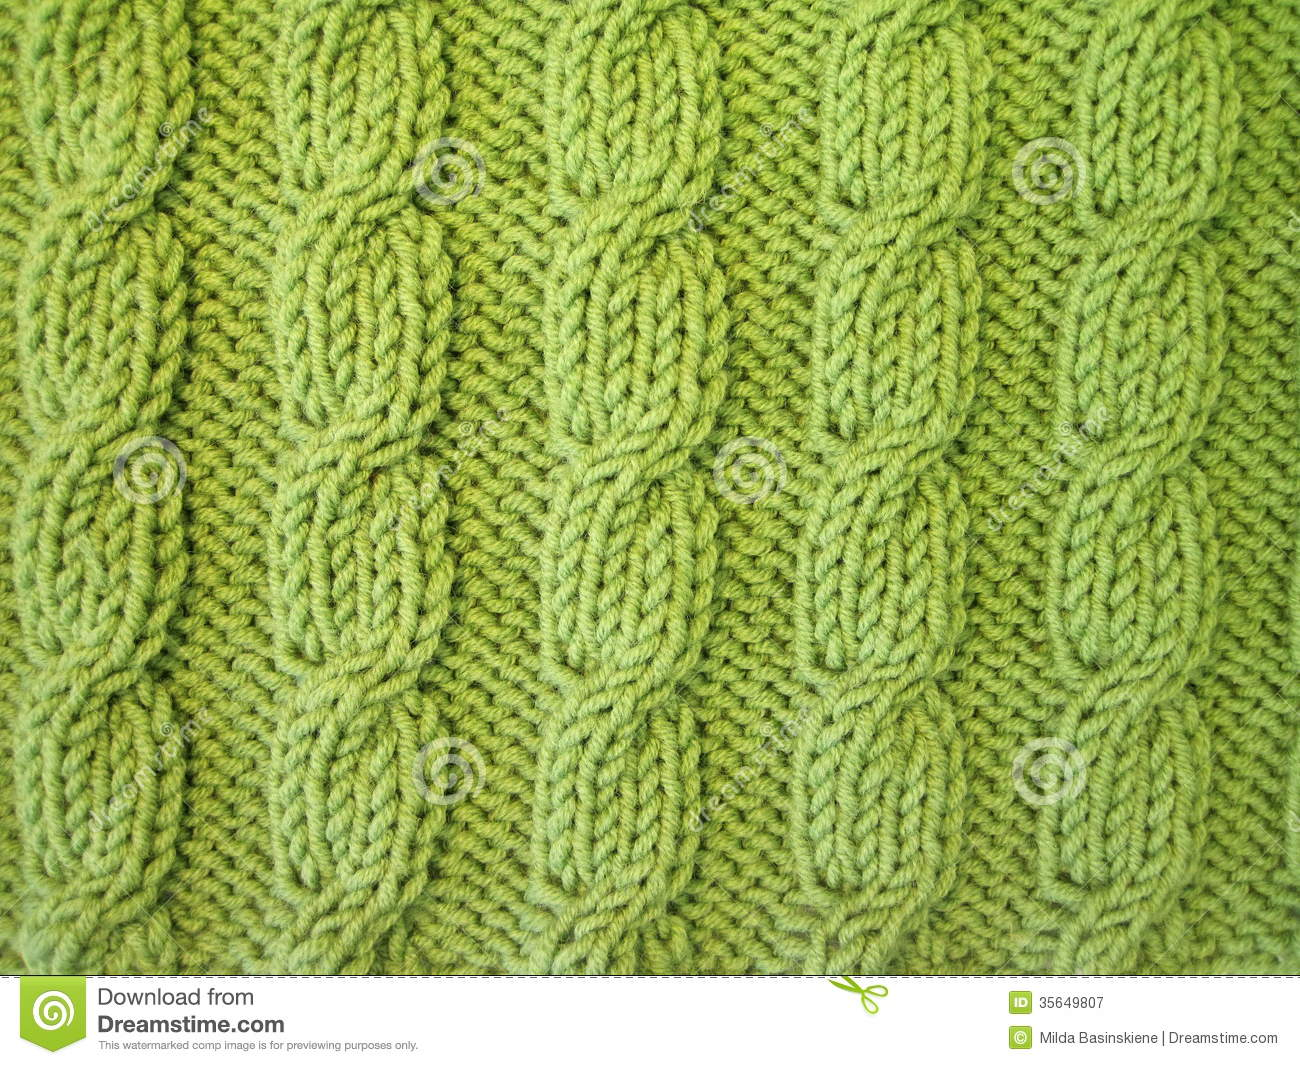 Knitting Wallpaper Free : Green knitting stock image of natural